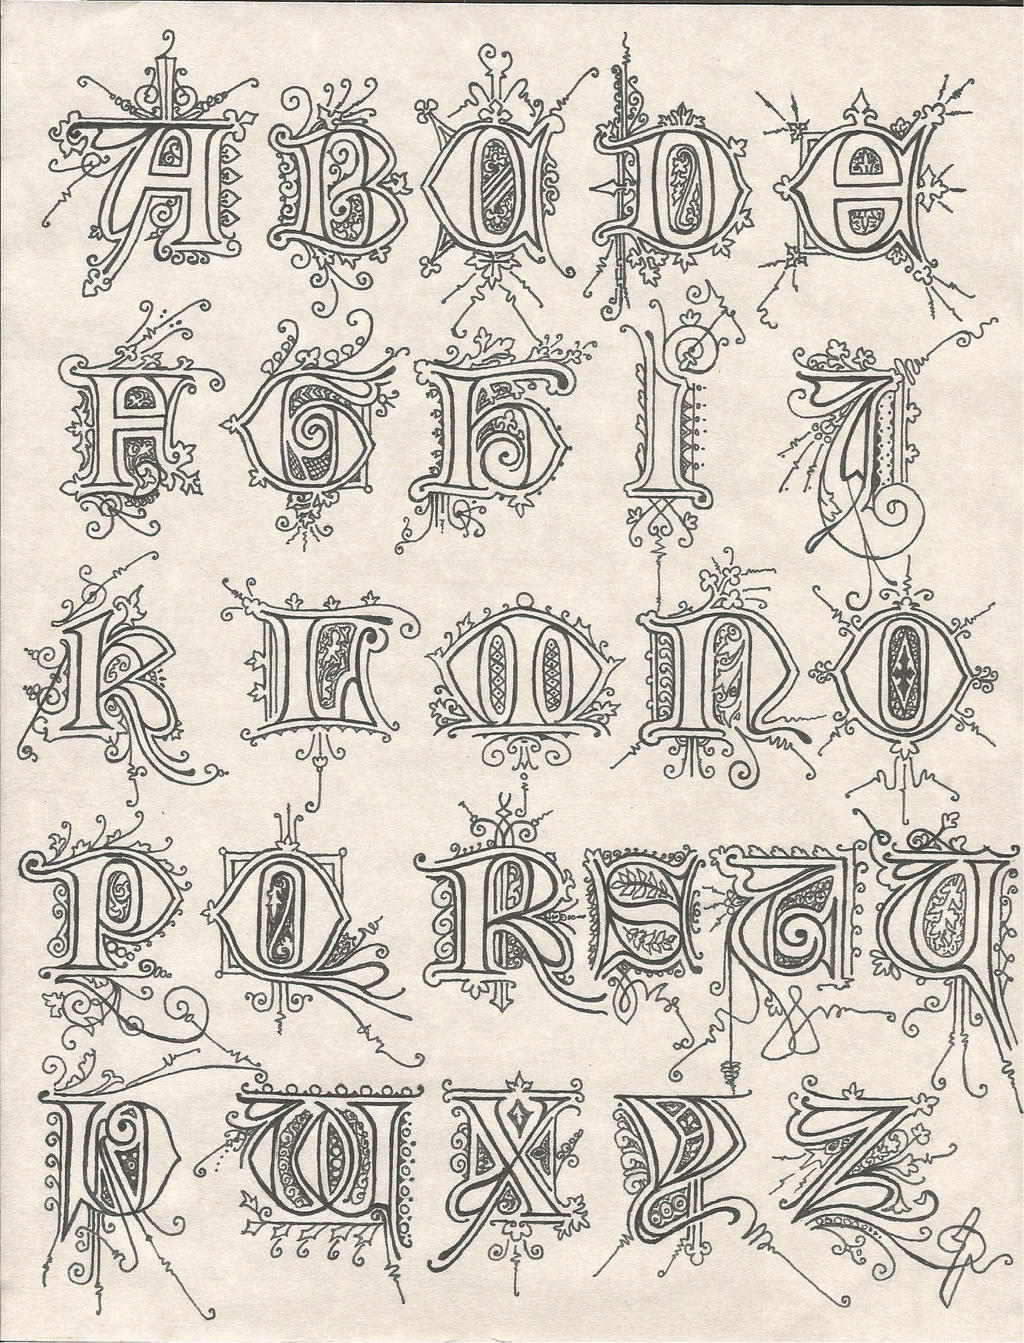 Calligraphy alphabet with frills by septaliger on deviantart